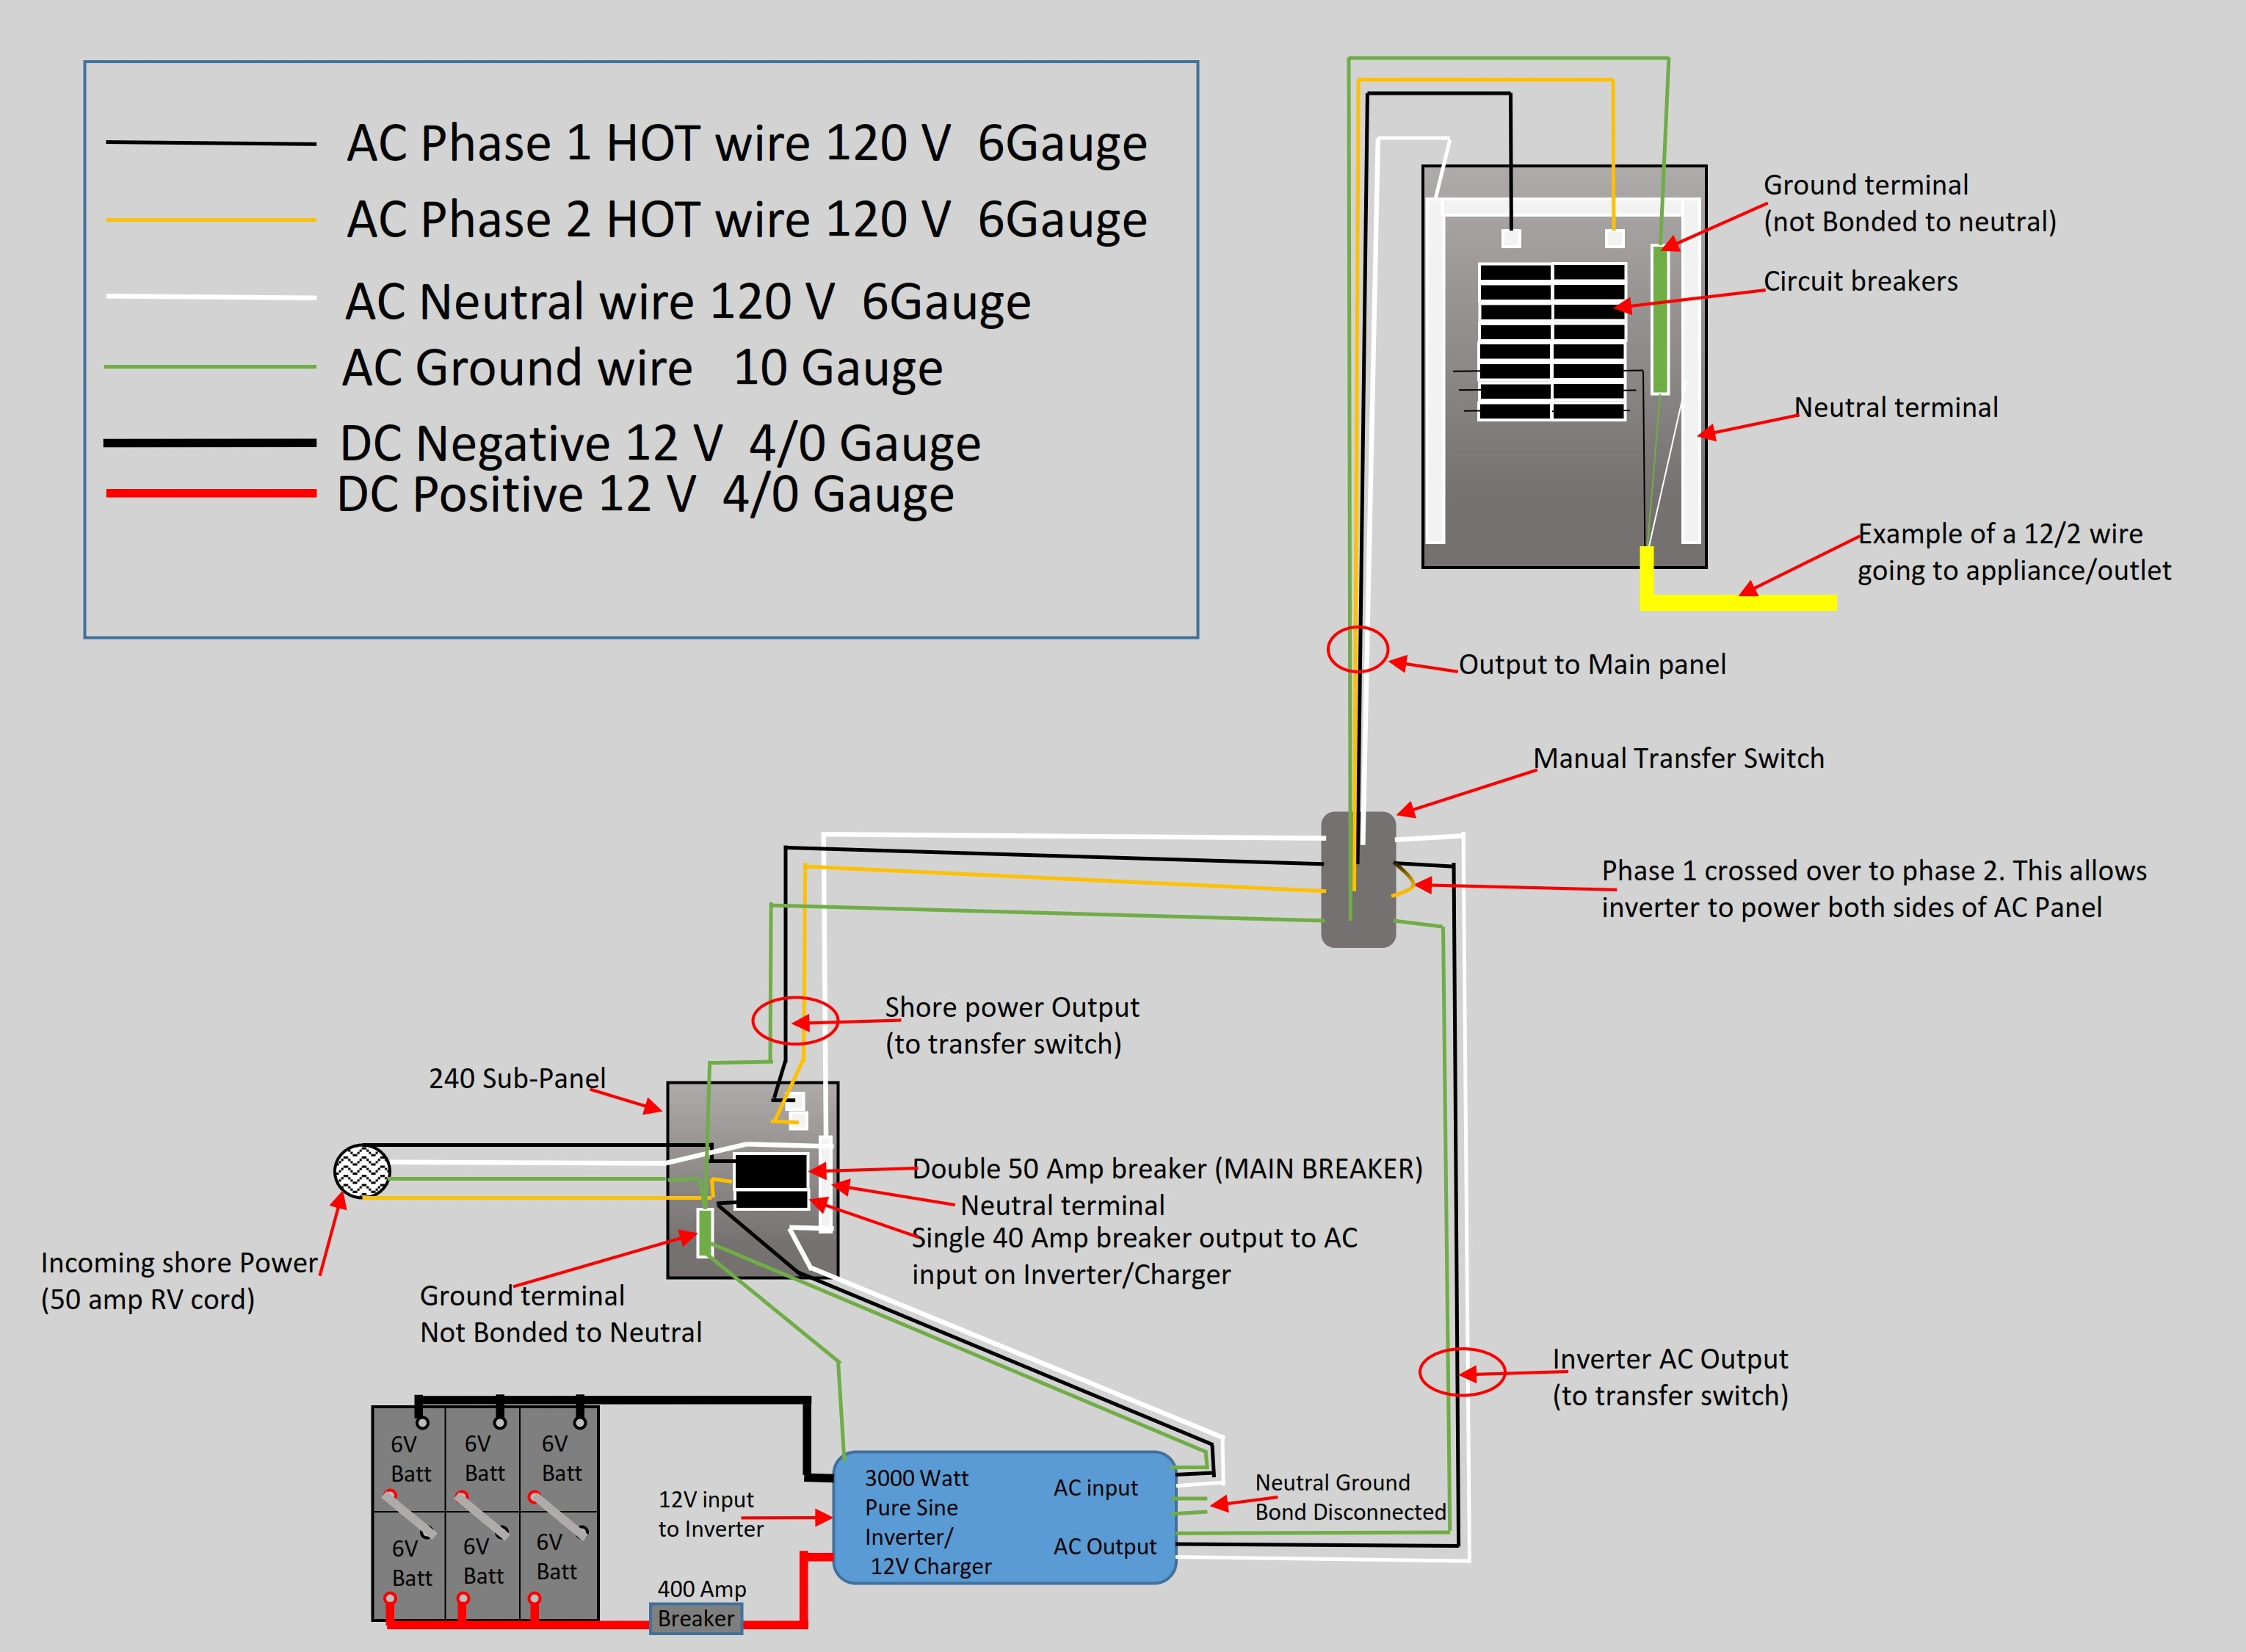 medium resolution of 240 single phase wiring diagram for panelboard wiring library rh 58 codingcommunity de 120 208 volt wiring diagram 240v single phase wiring diagram